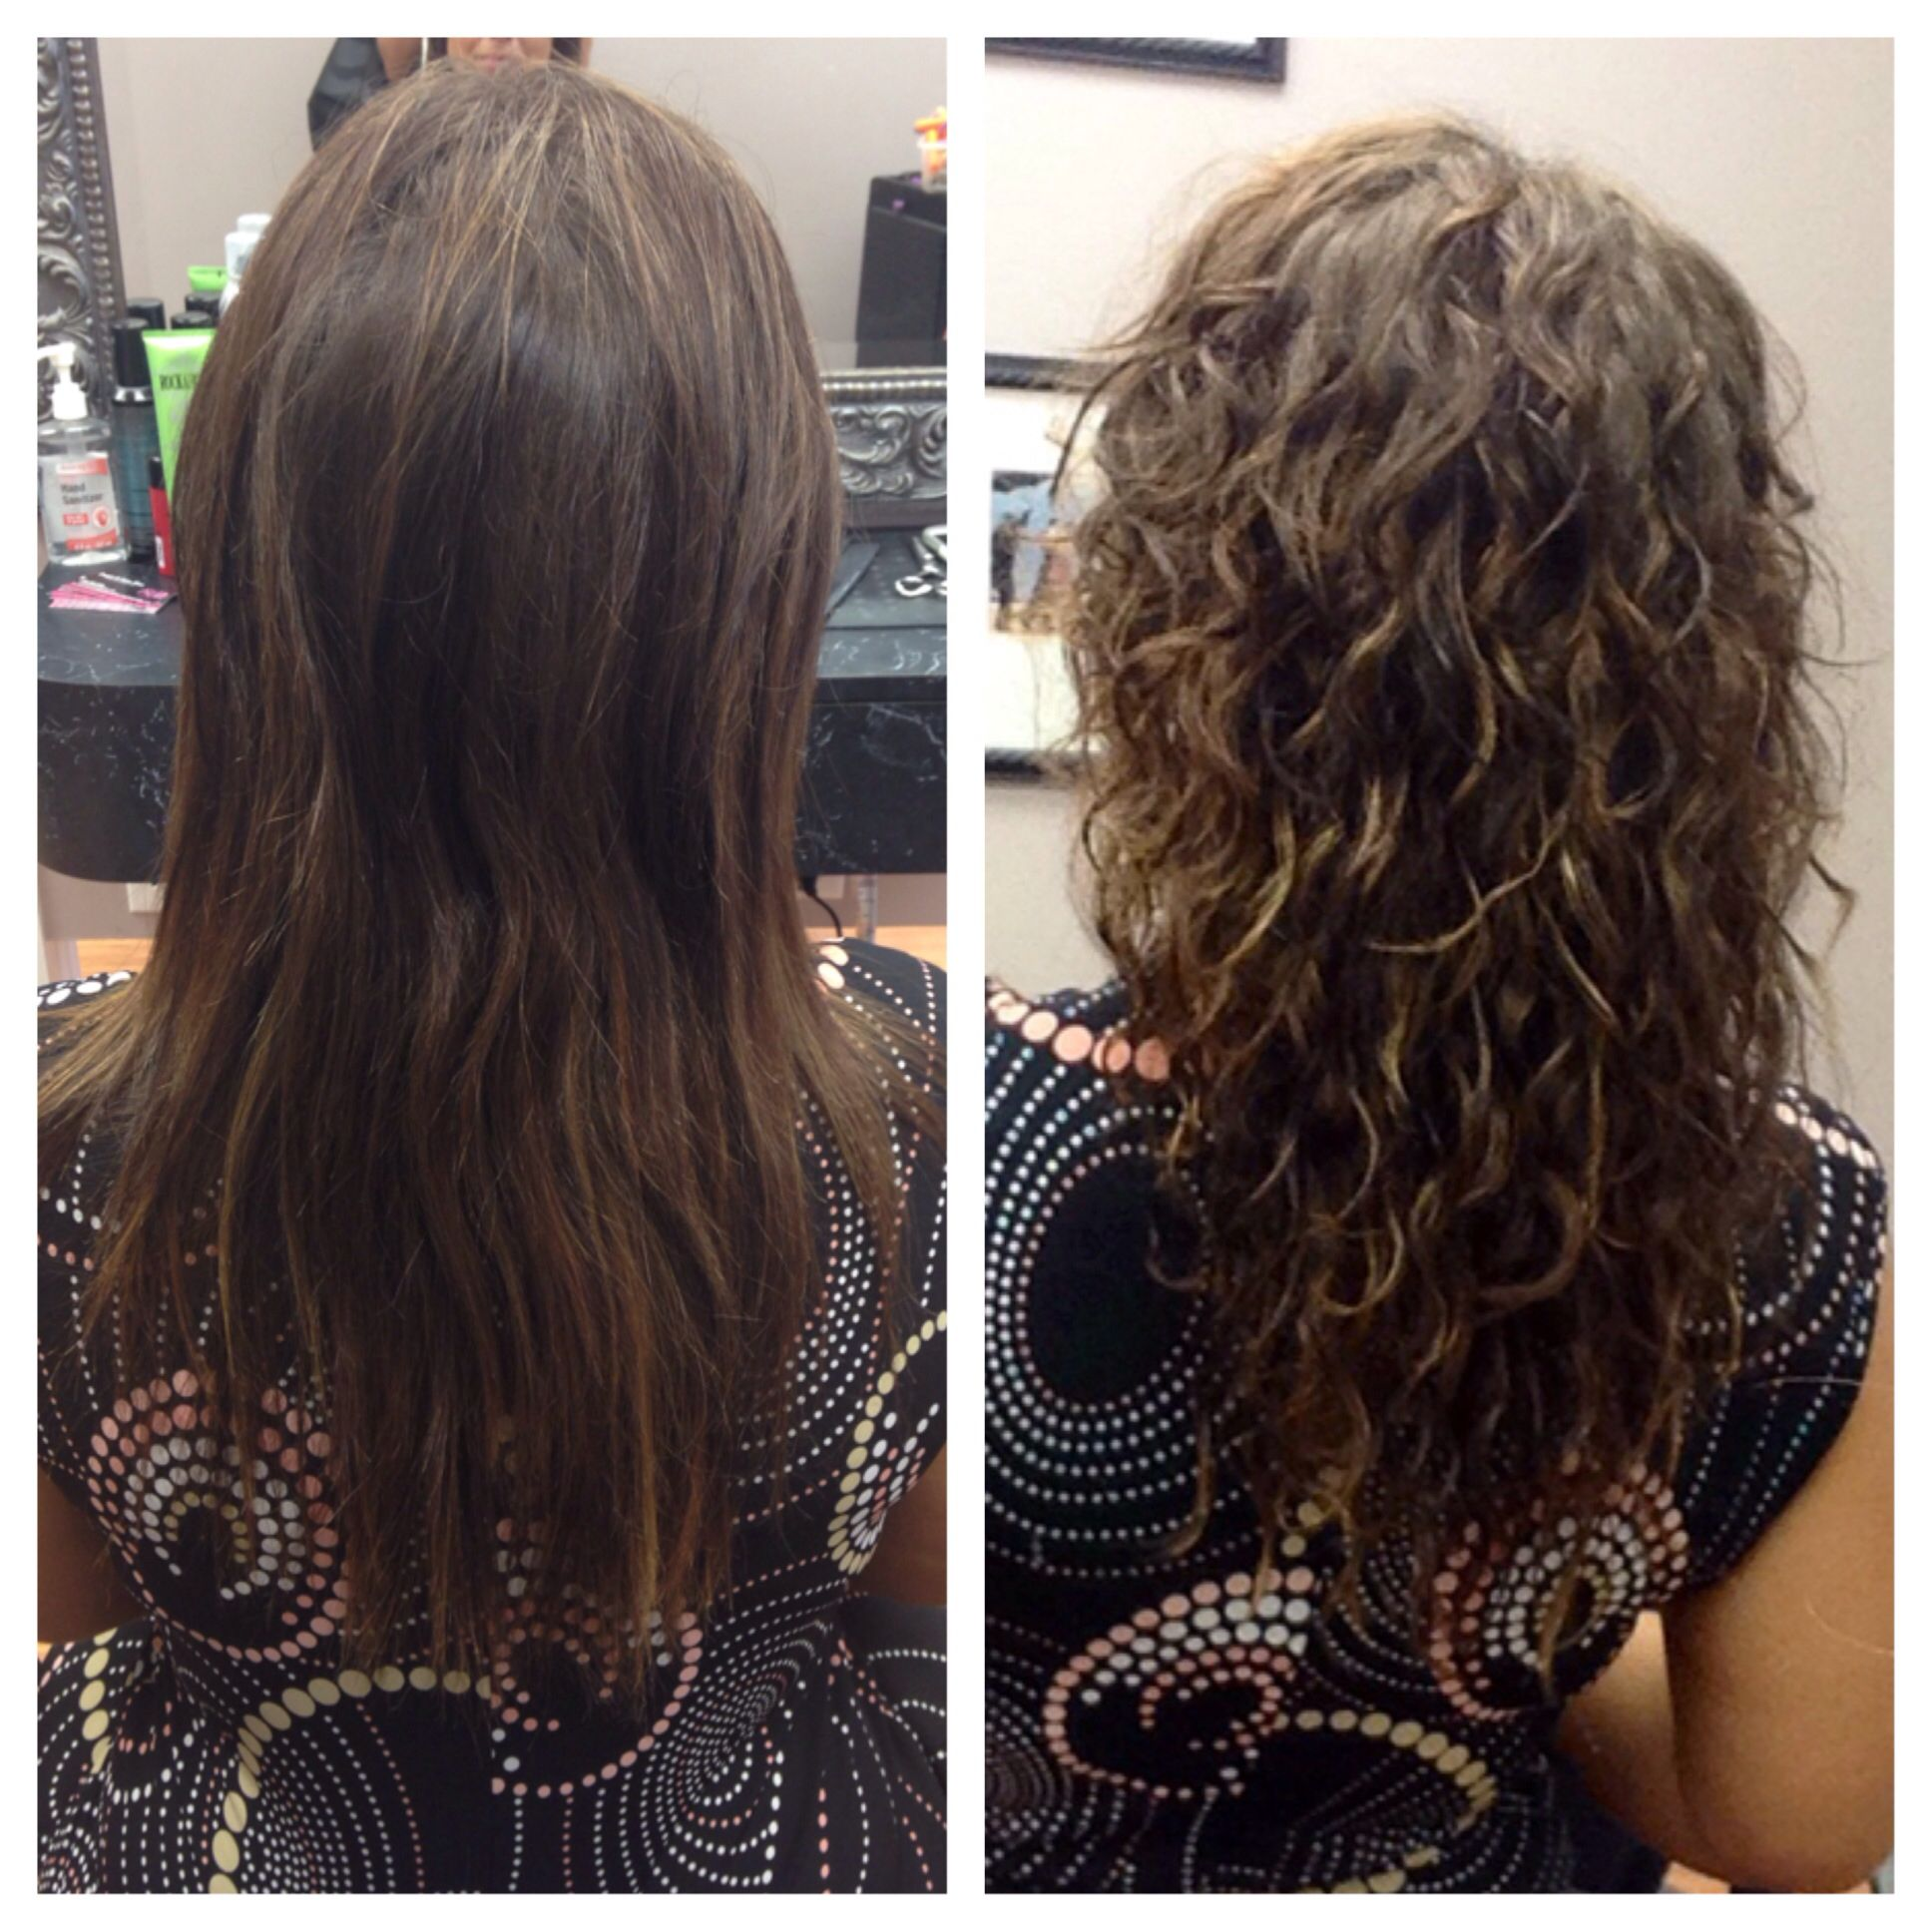 Body Wave Perm Before And After